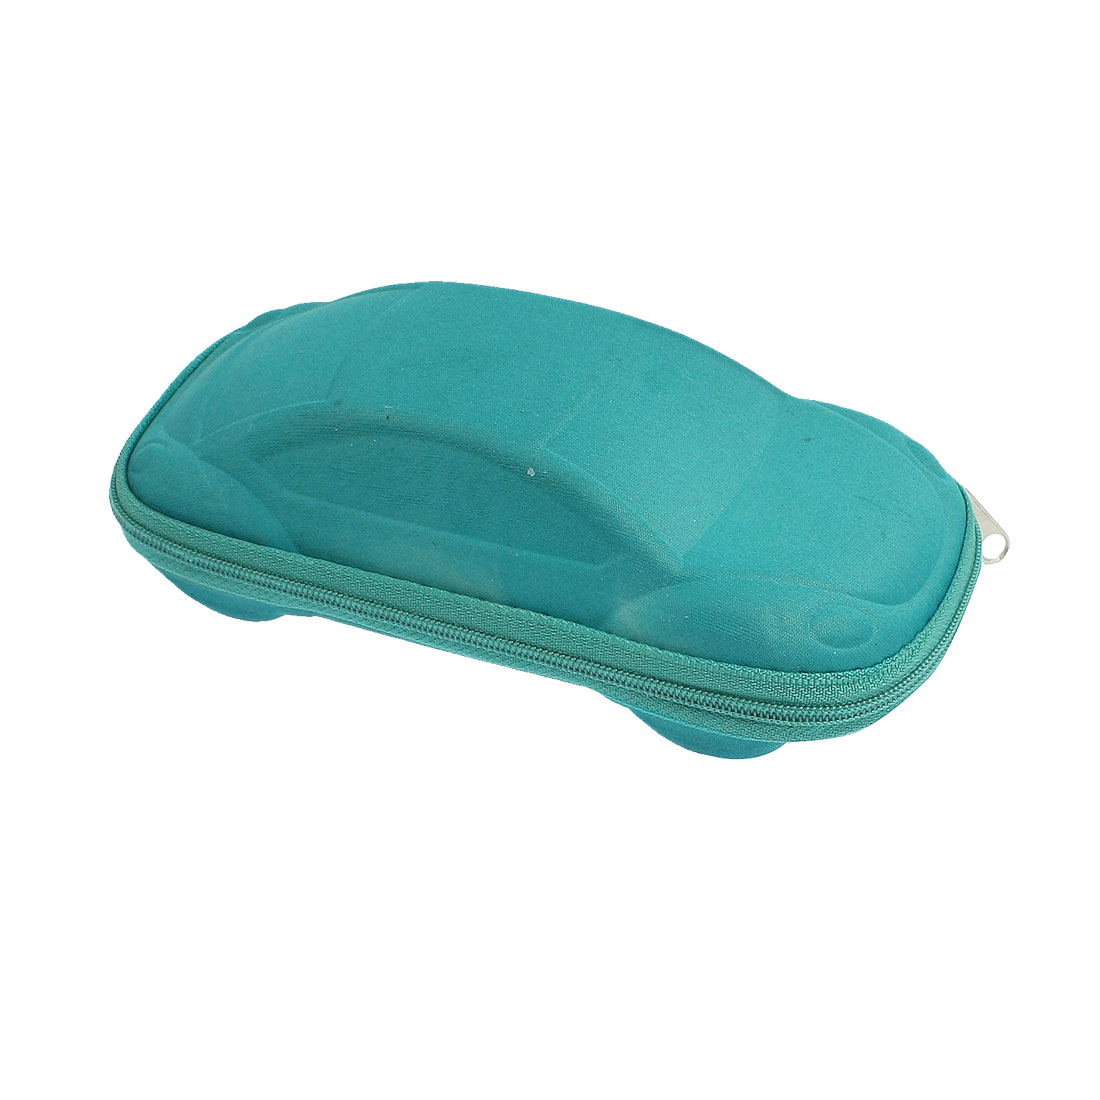 Teal Black Car Shaped Slide Fastener Eyeglasses Sunglasses Case Holder